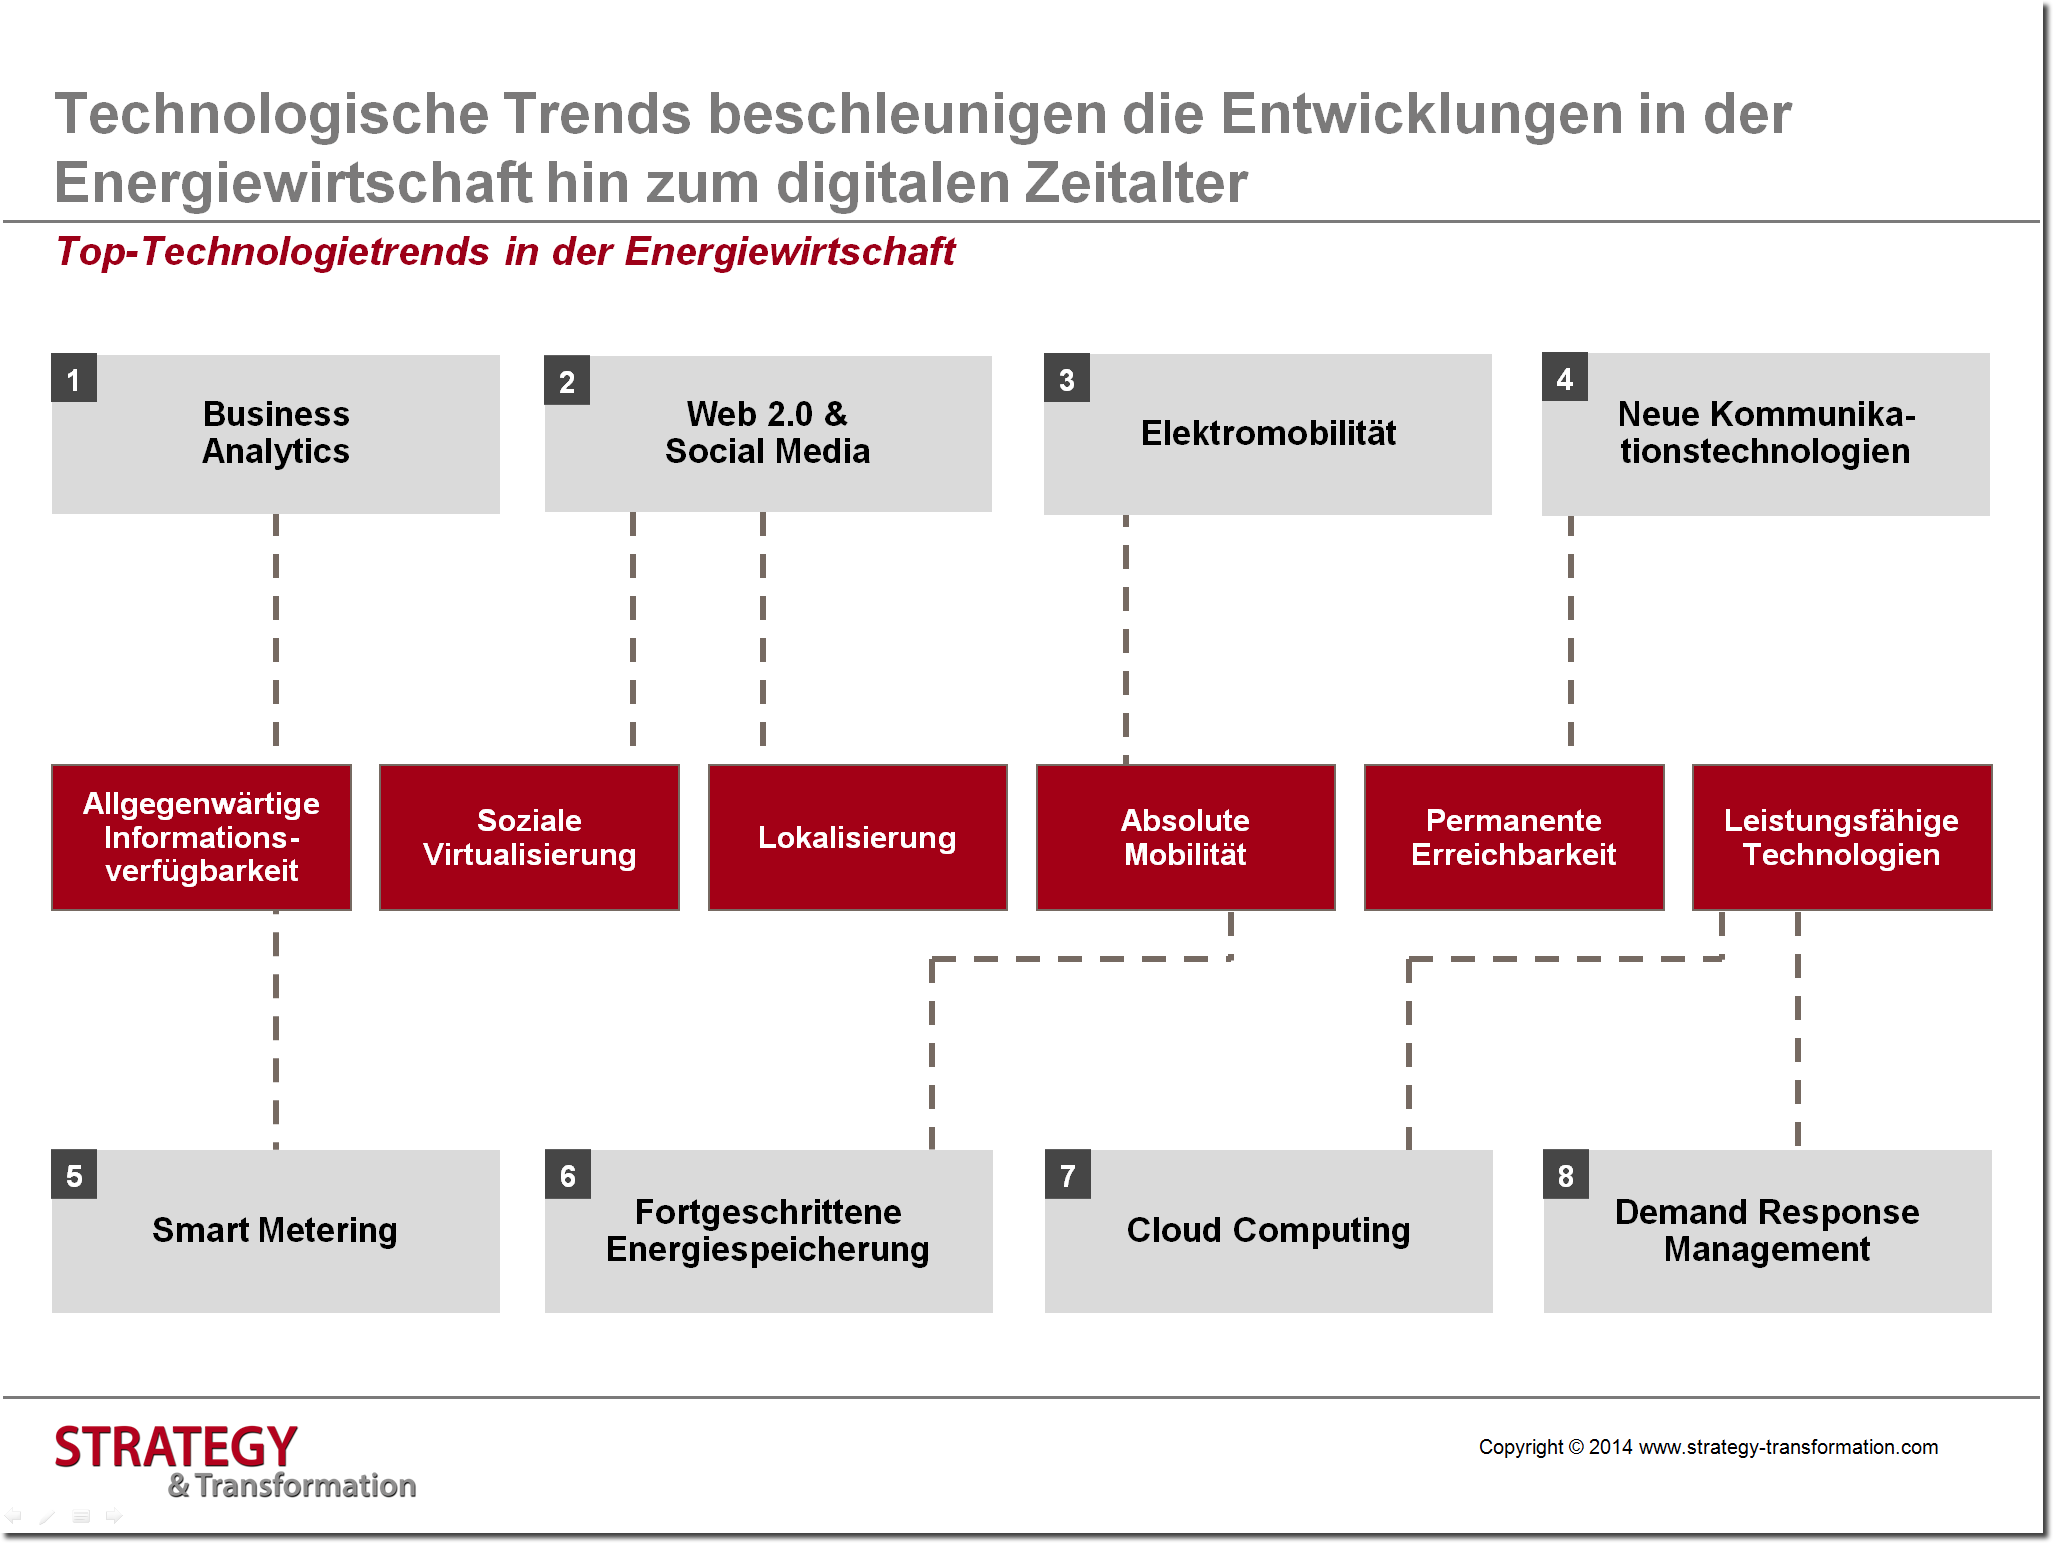 Digitale Transformation Energie_Top Technologietrends in der Energiewirtschaft